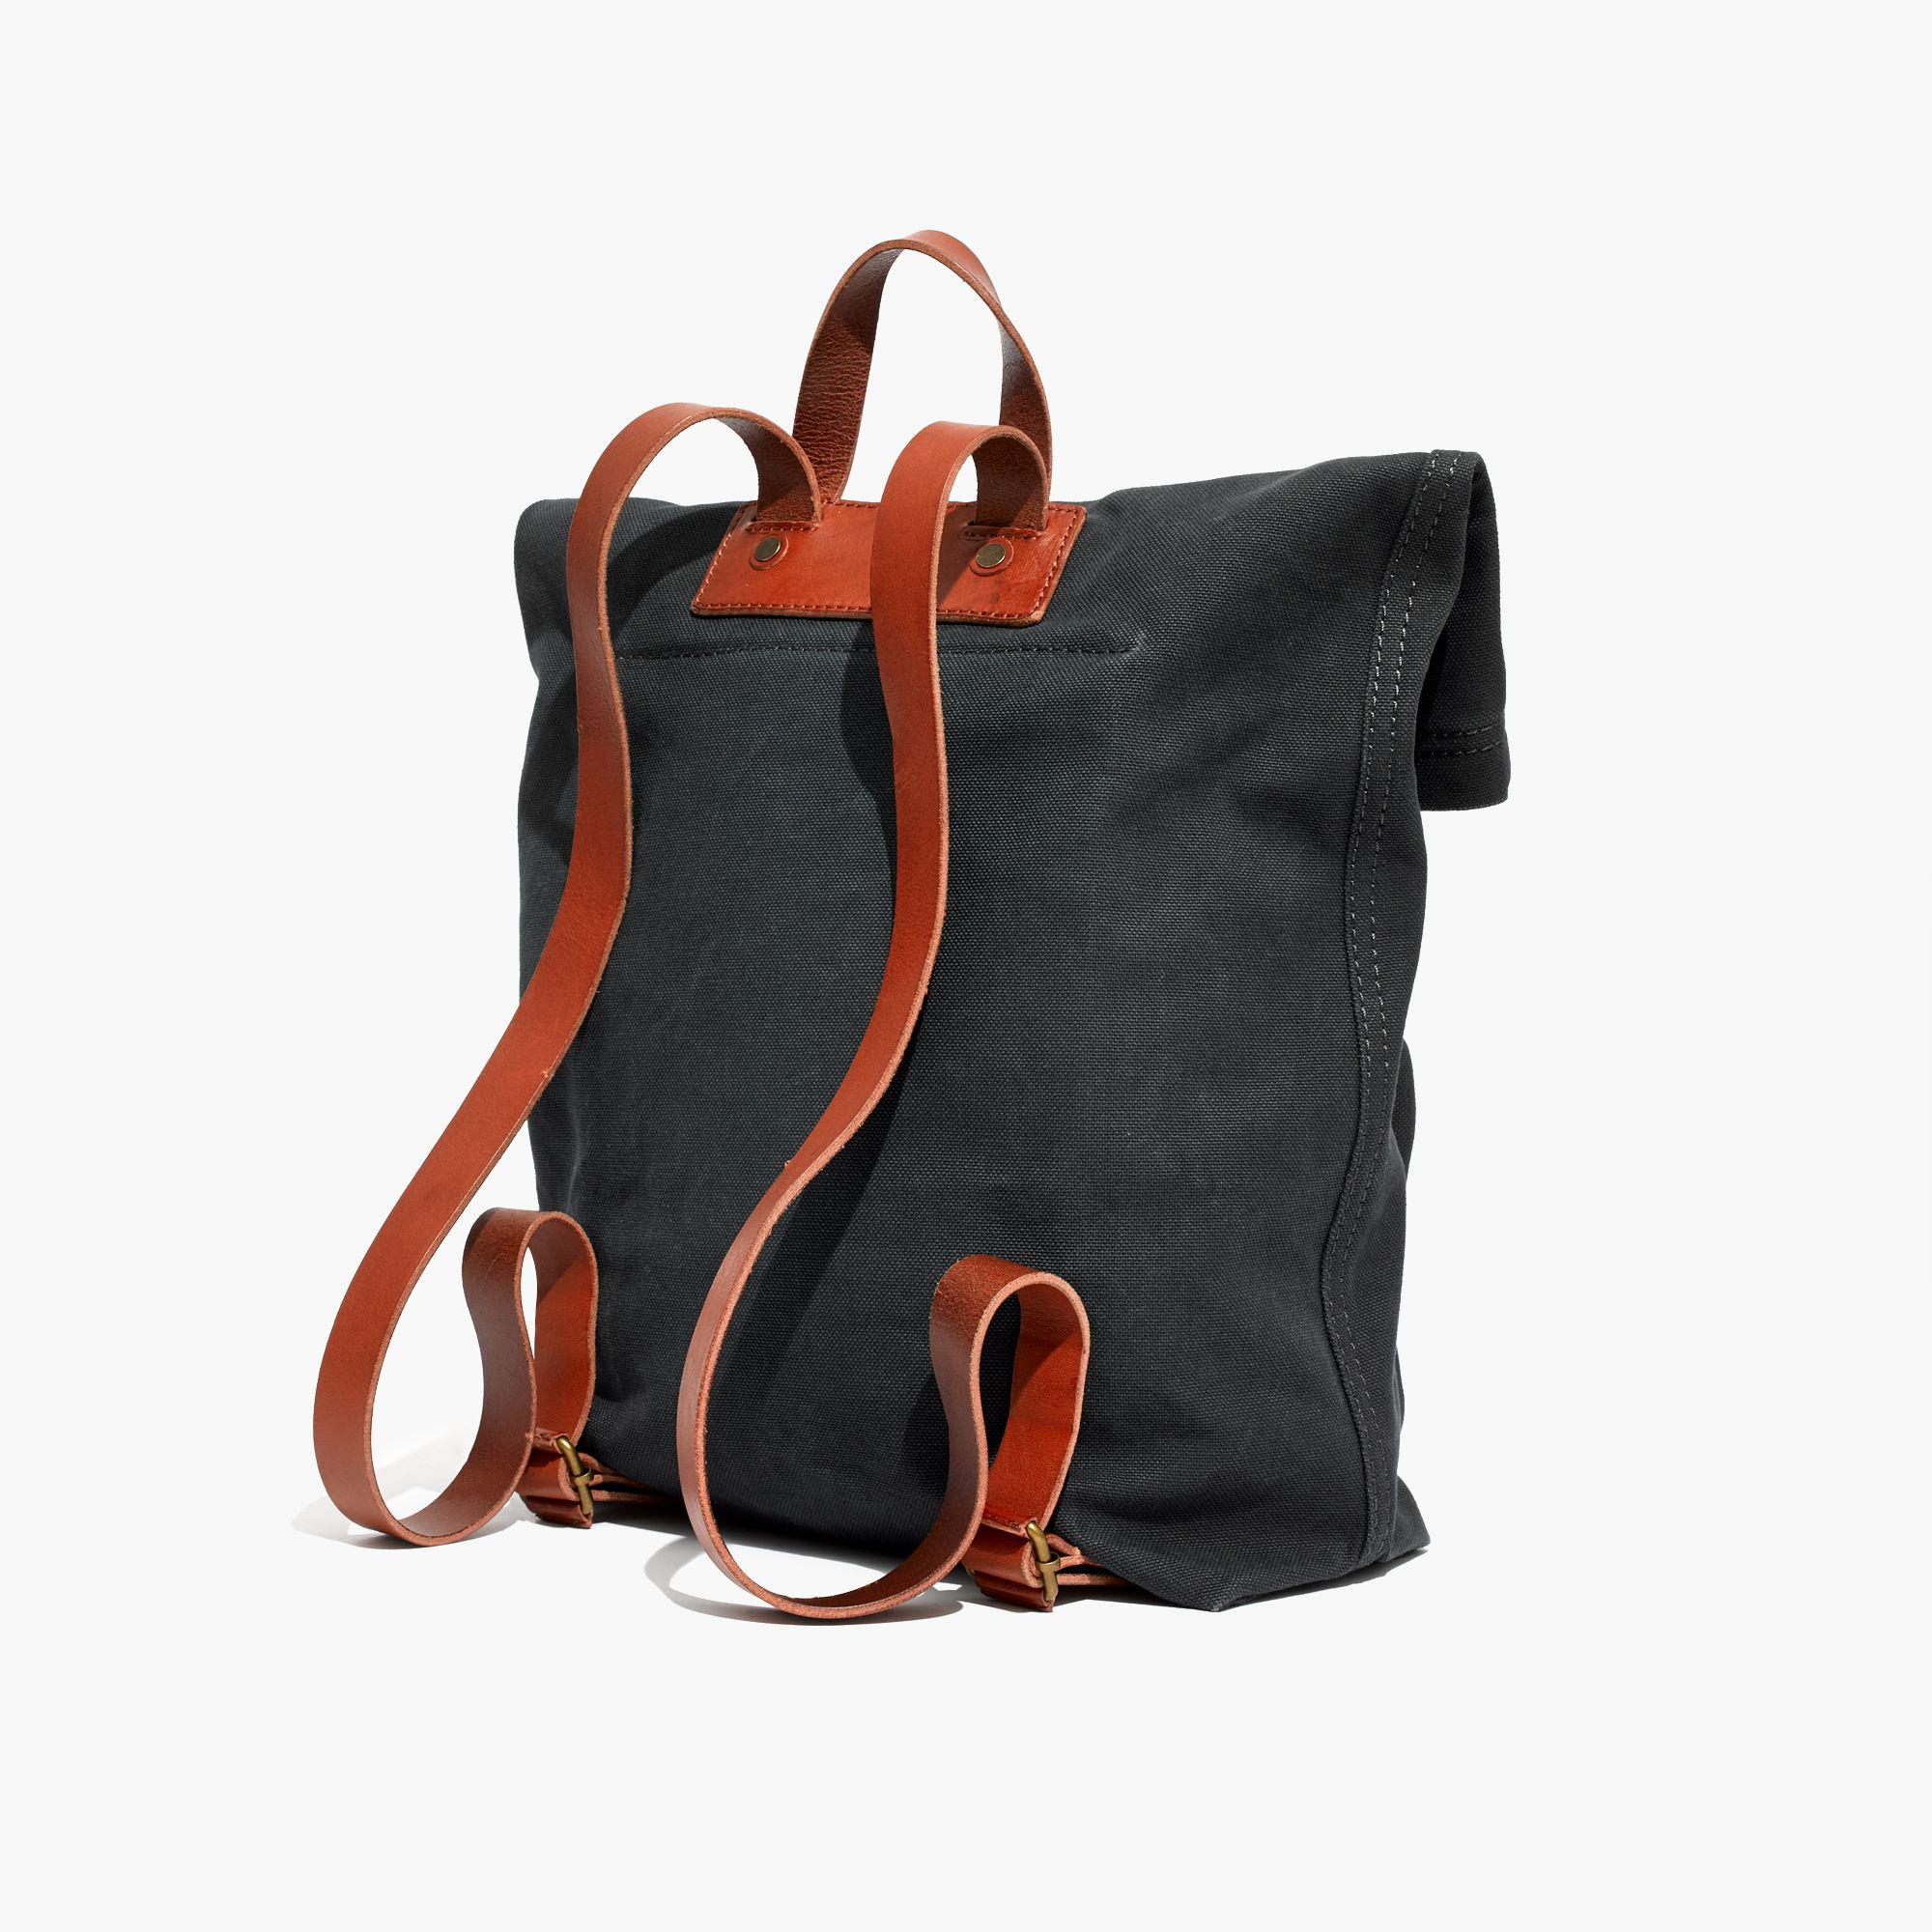 Madewell The Canvas Foldover Backpack in Black